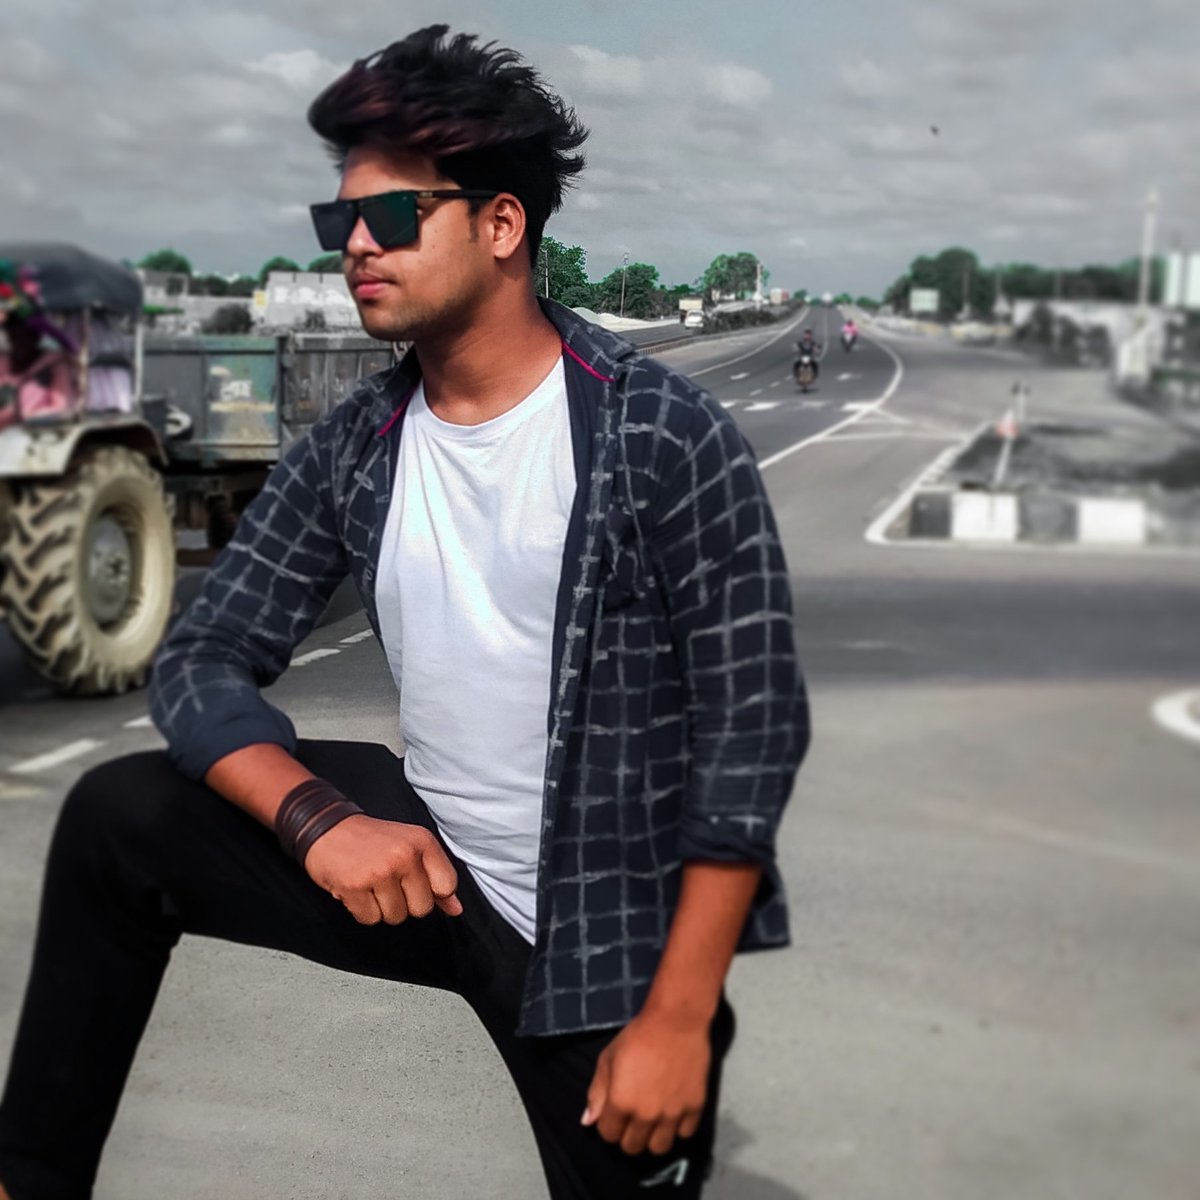 Instagram viral #20likes #faishan #style #bestpic #blooger #LCCROOM https://t.co/wS5j4XSpXH